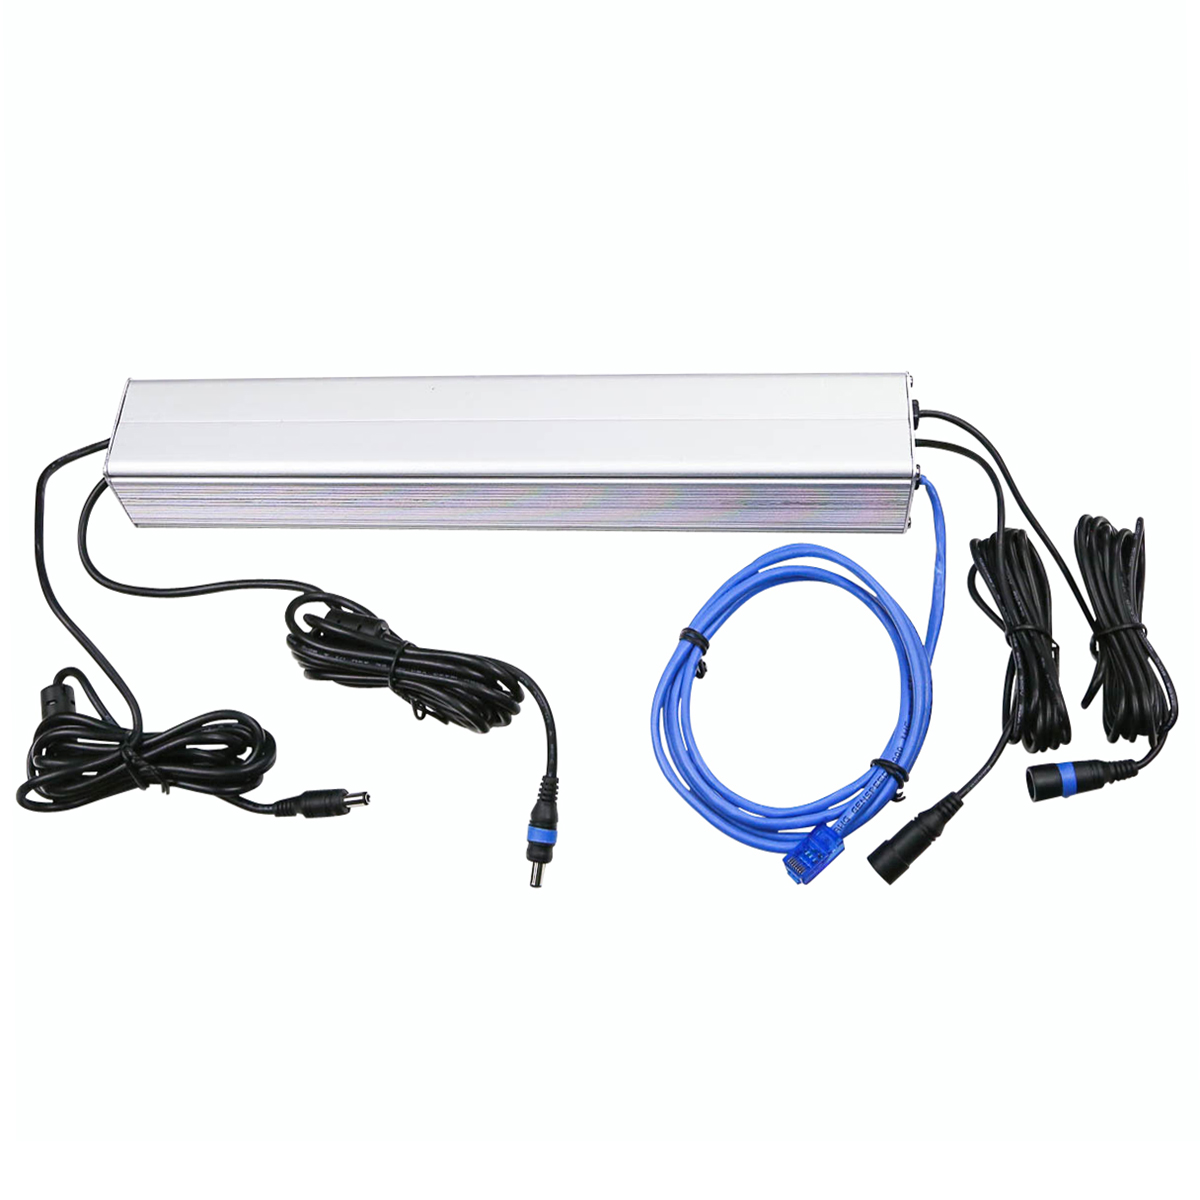 Dual Channel Led Control Interface Open Box